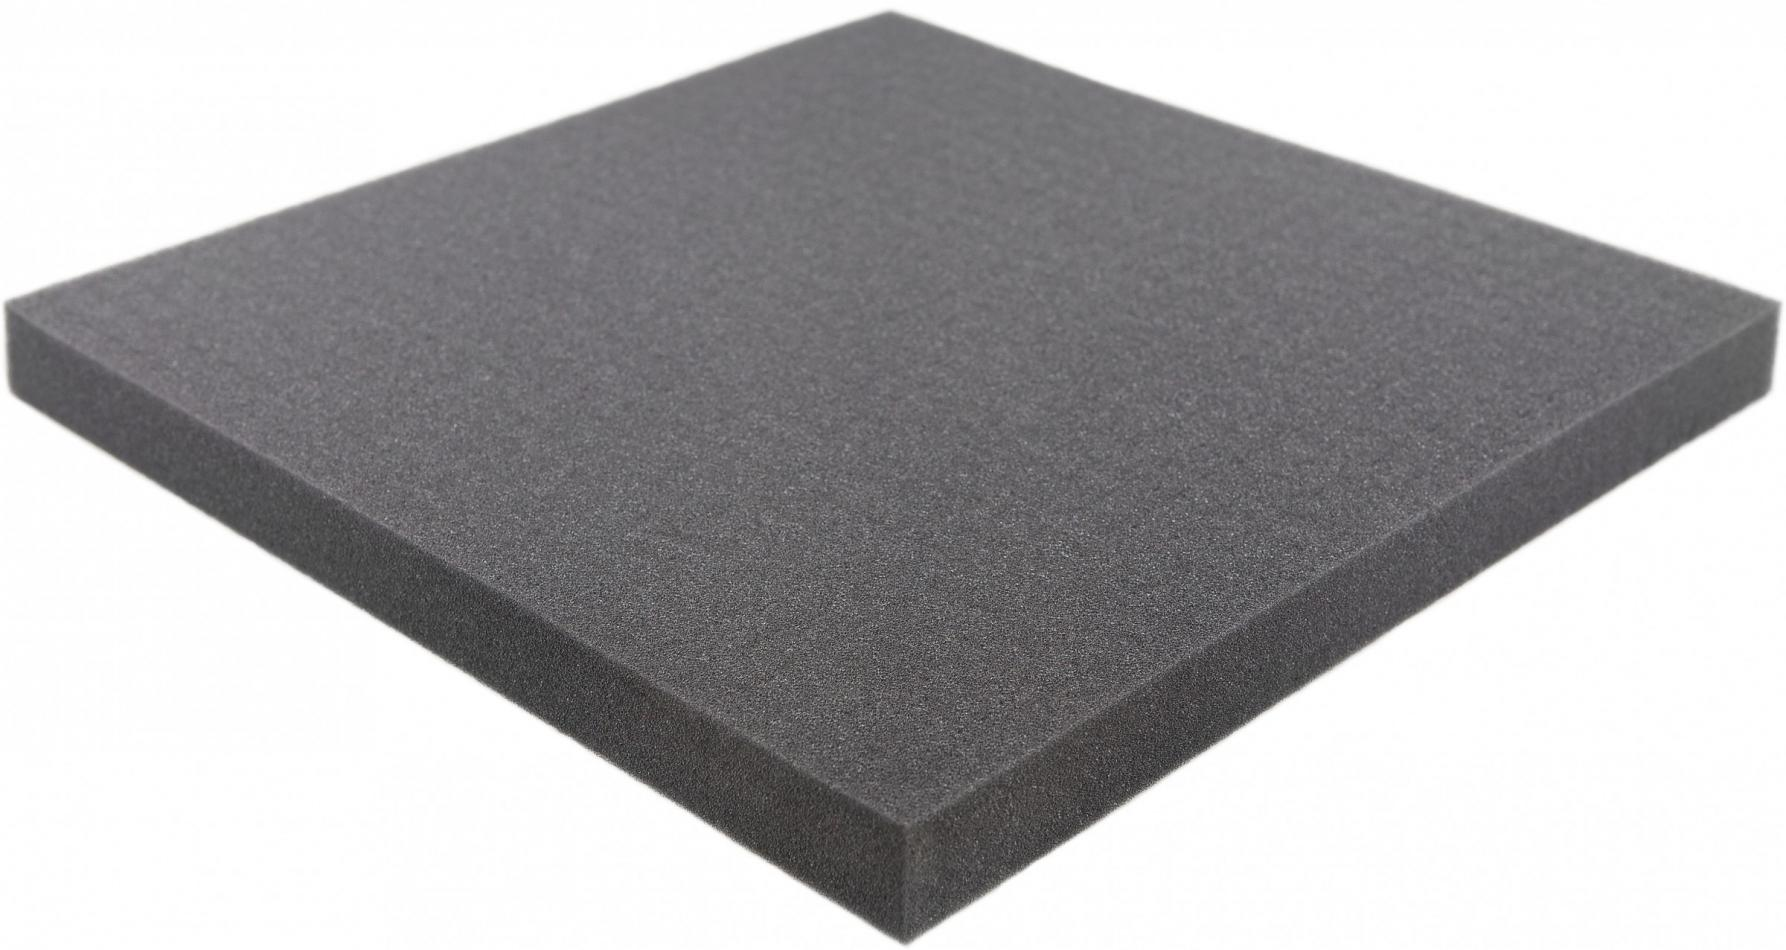 600 mm x 600 mm x 30 mm (1.2 inches) Raster / Pick and Pluck / Pre-Cubed foam tray - Raster 15 mm